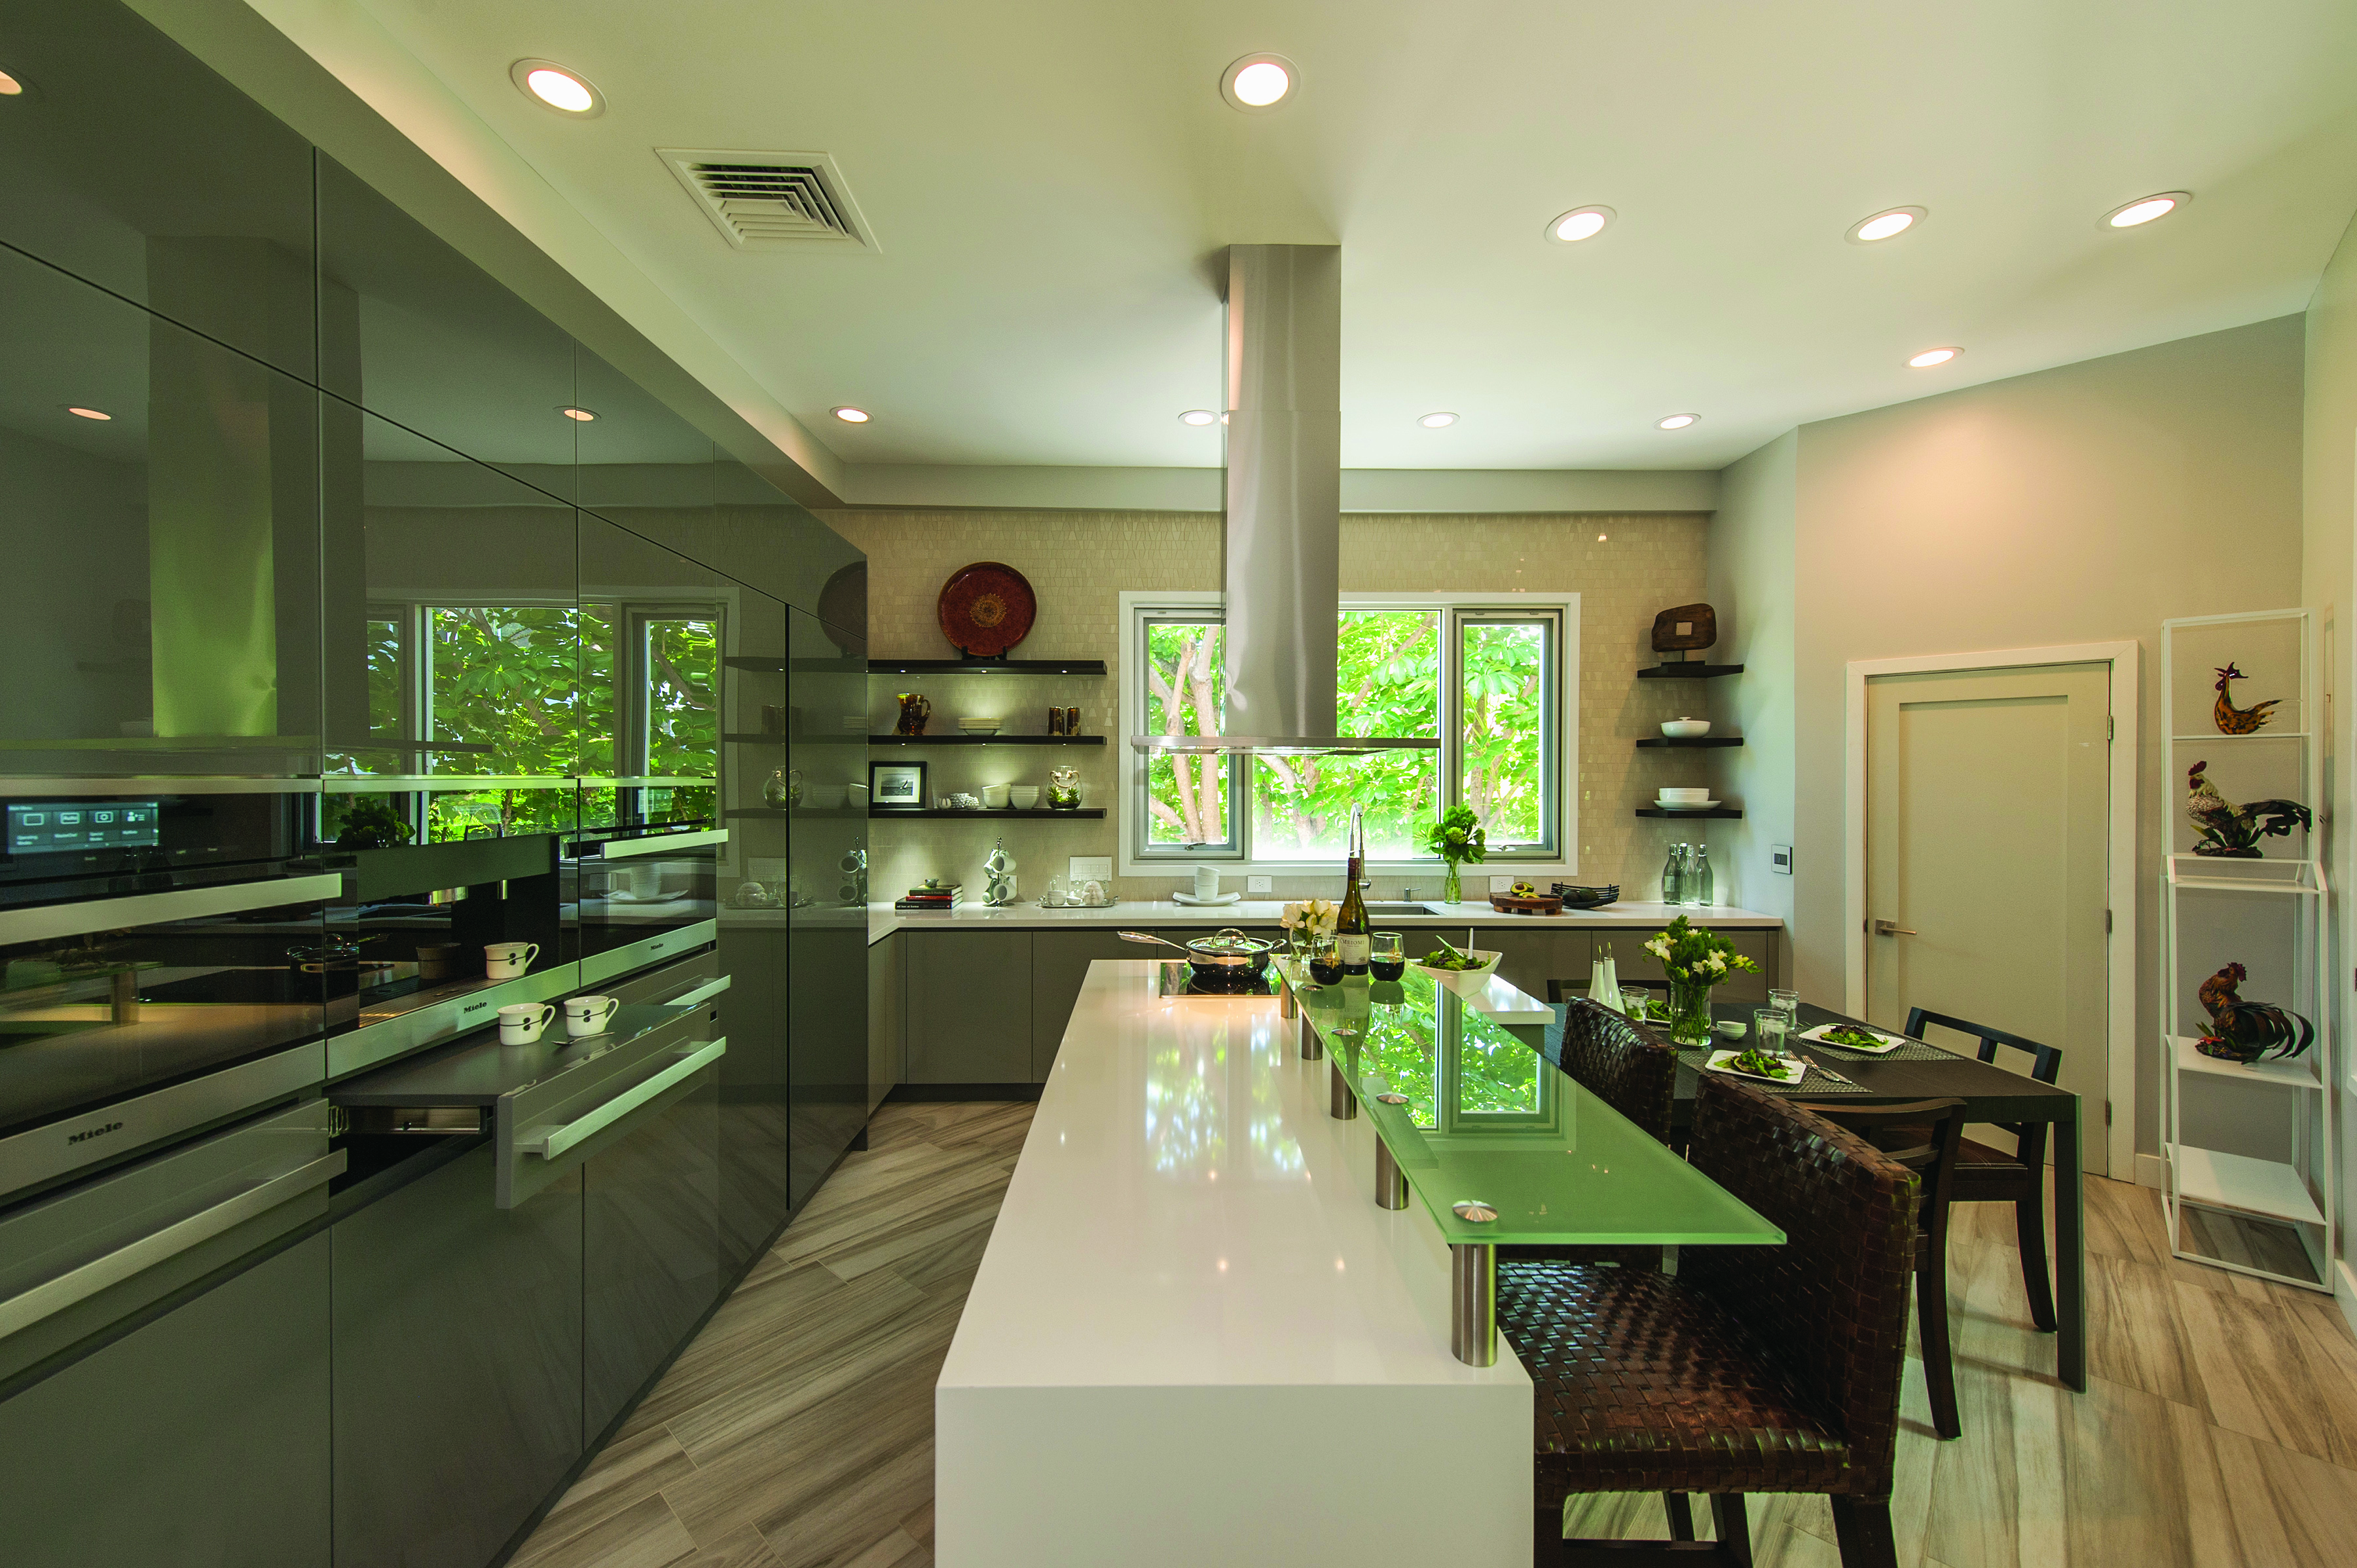 Contemporary design ideas defining 12 modern kitchen trends 2017 - High Gloss Cabinets Are An Emerging Trend According To The National Kitchen And Bath Association S Nkba Annual Design Survey Clean Lines Built Ins And